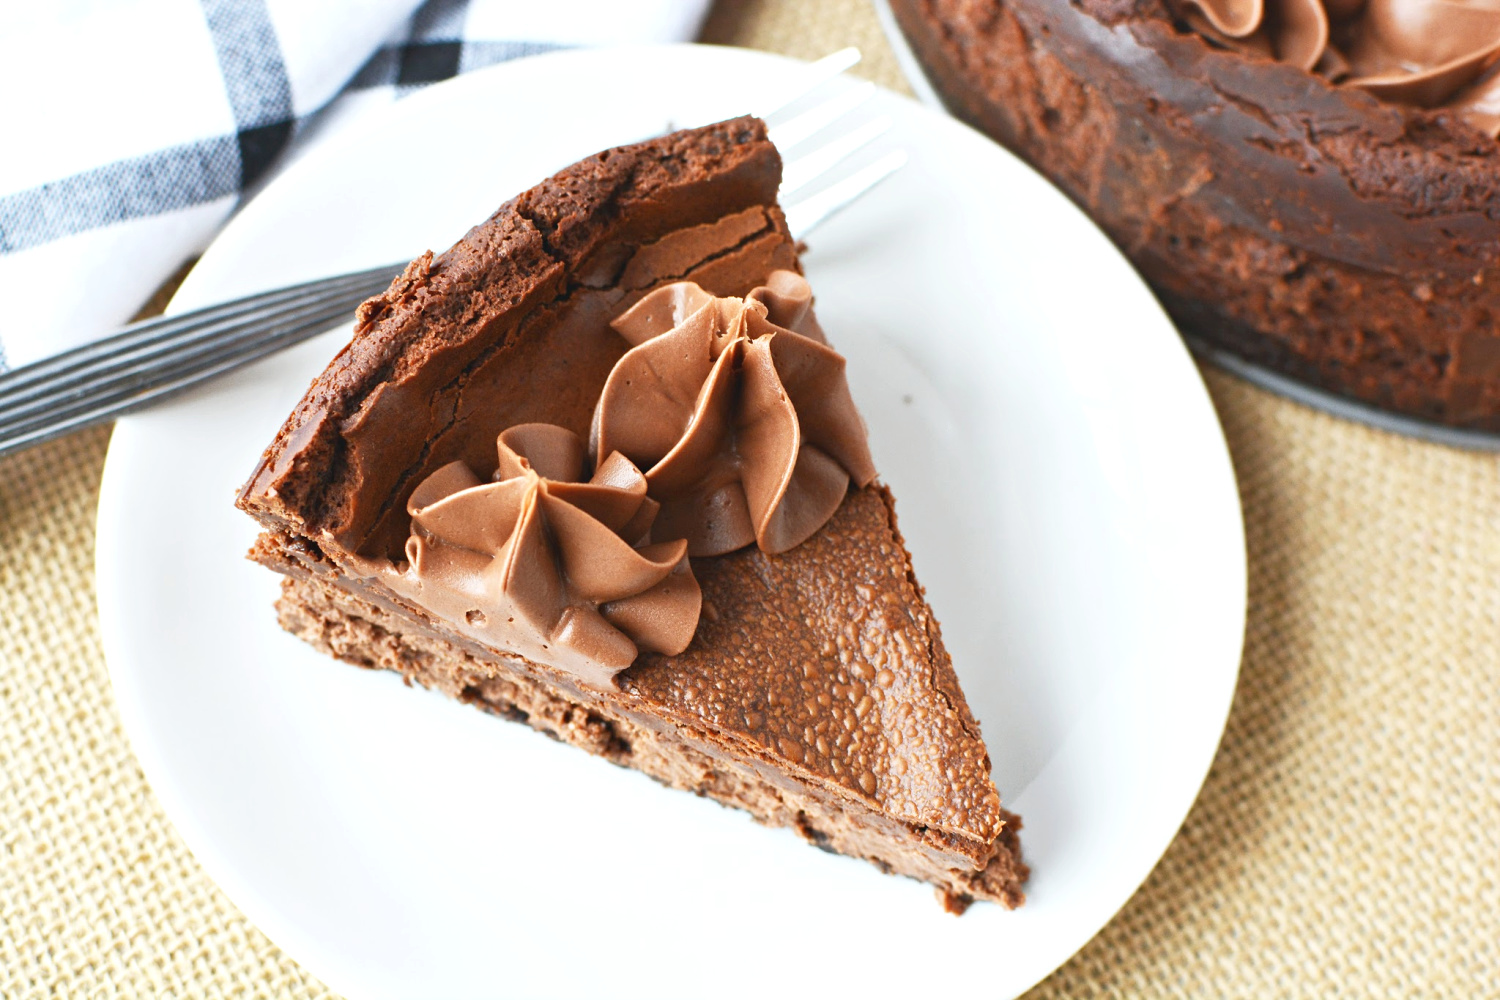 Chocolate Mousse Cheesecake with a chocolate graham cracker crust